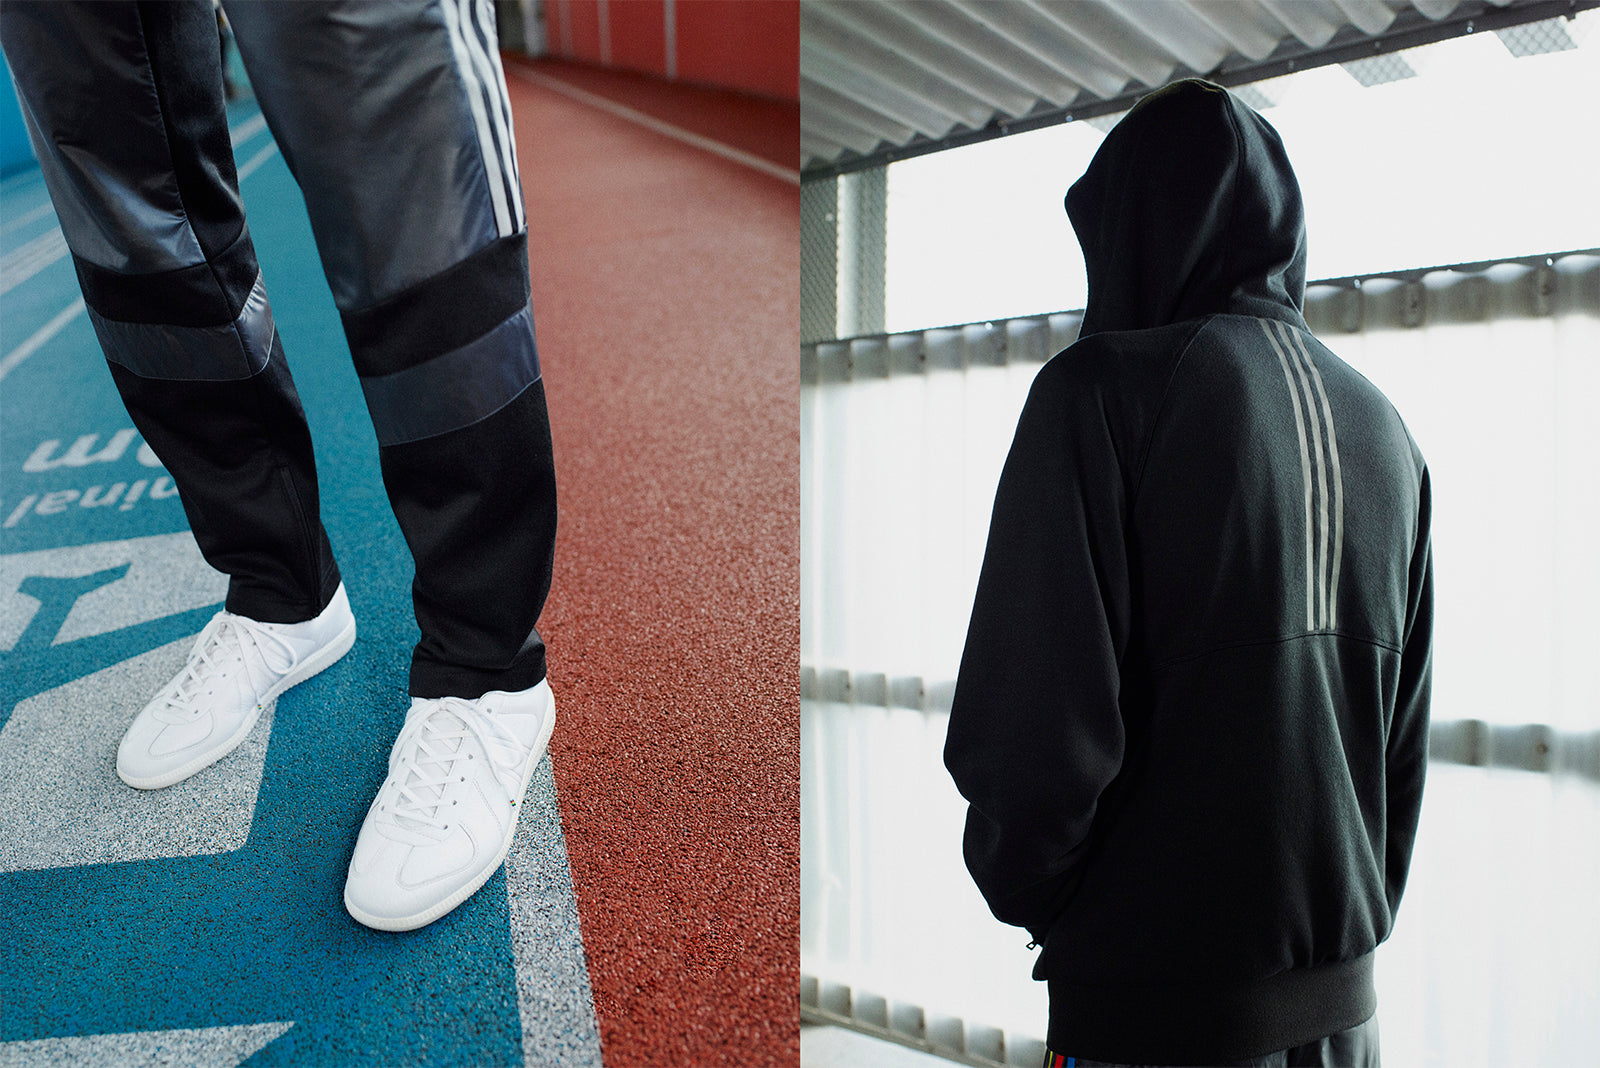 f80bfe418 Each piece of apparel along with the two footwear styles come together as a  luxurious and laidback 'uniform', perfectly suited to a 48-hour excursion  to one ...